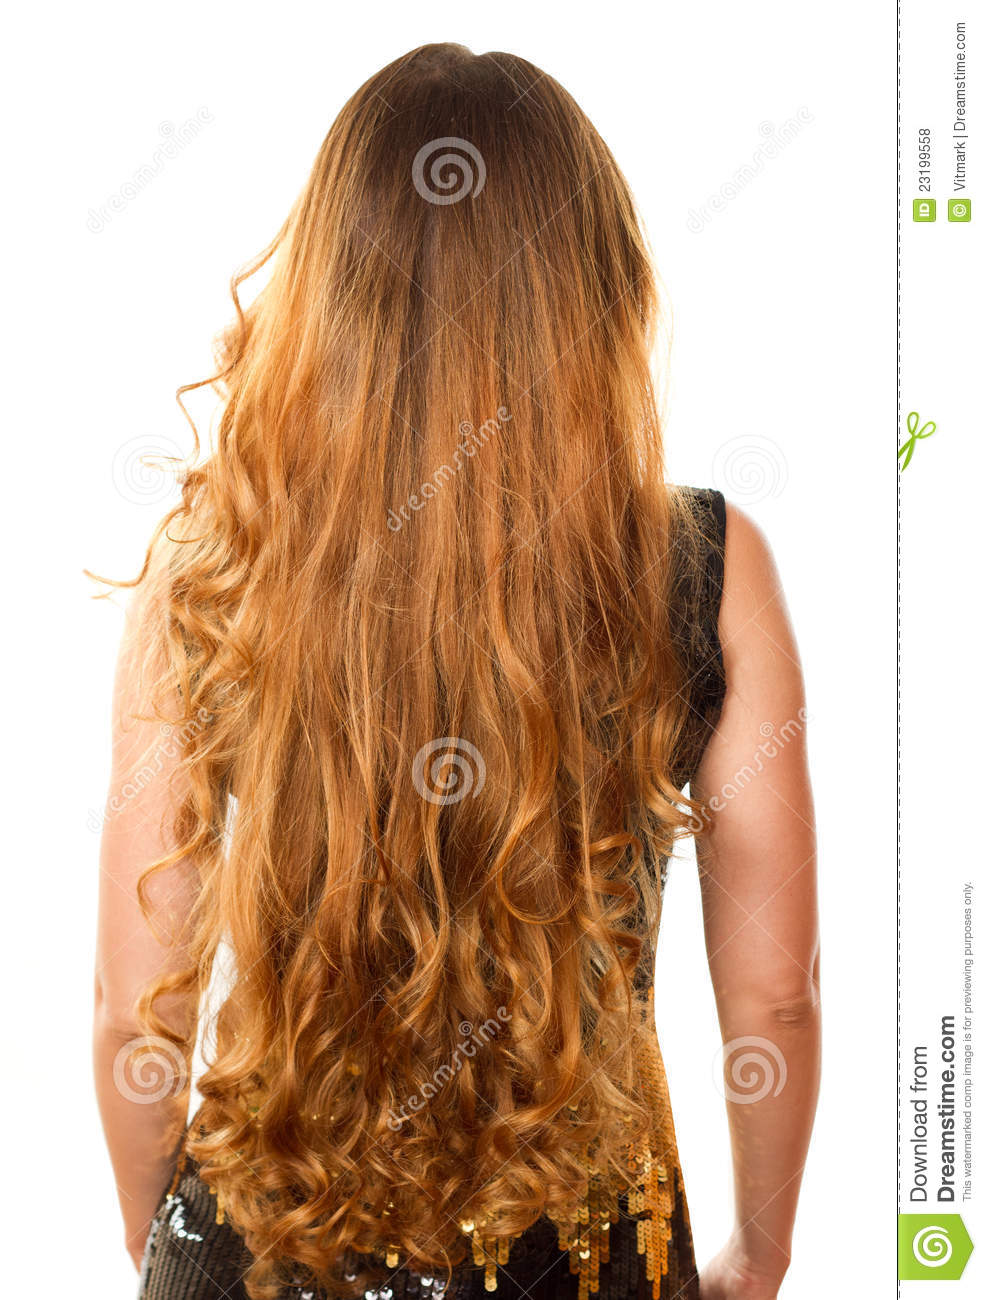 Hairstyle From Long Curly Hair From The Back Stock Photo - Image